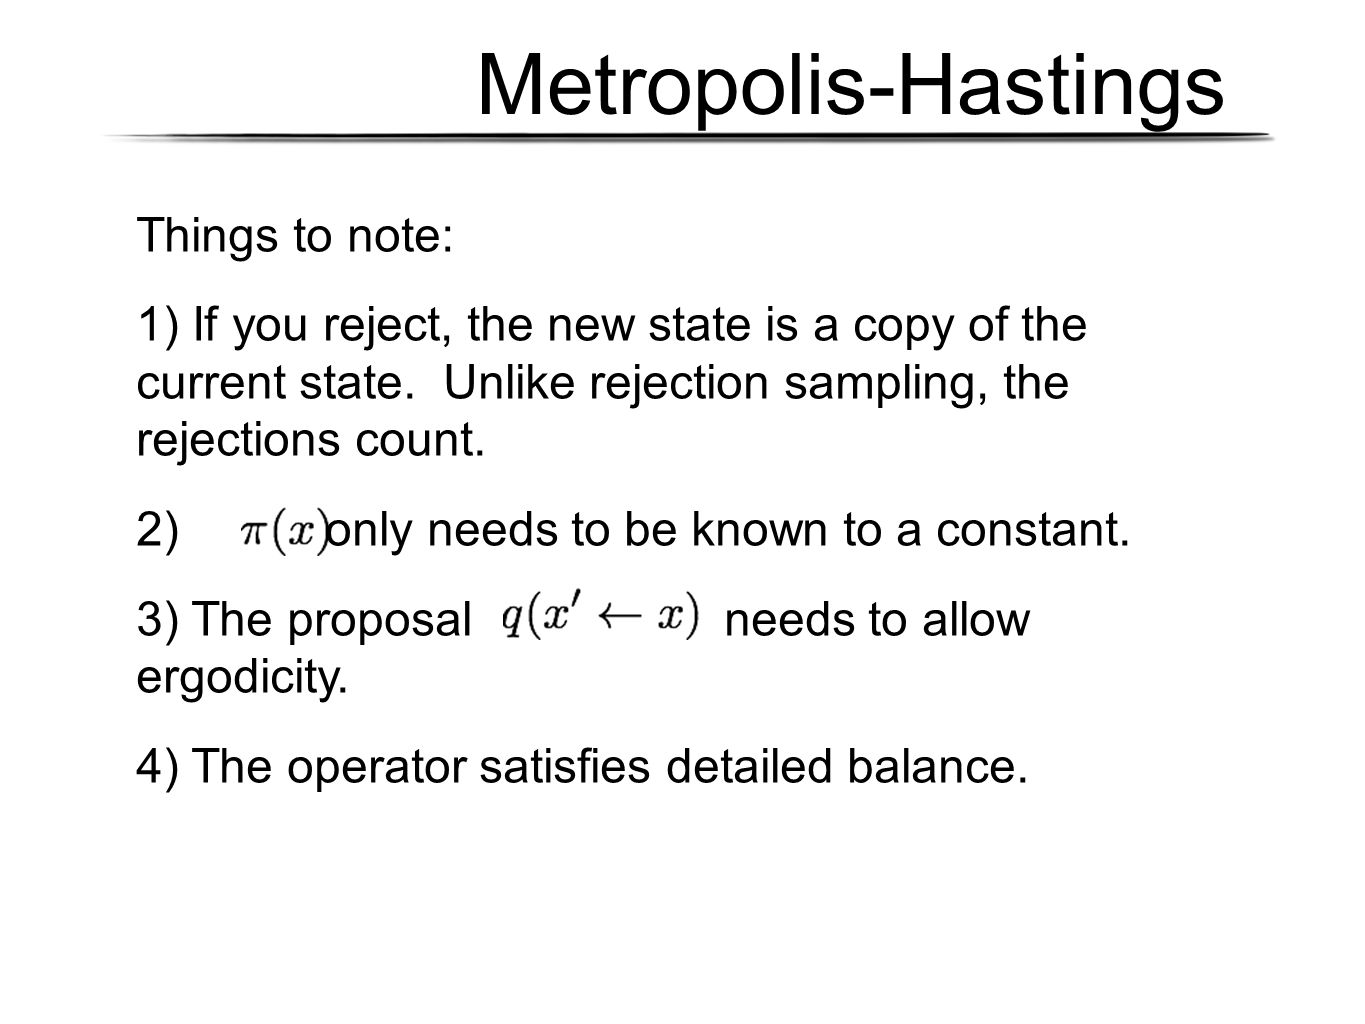 Metropolis-Hastings Things to note: 1) If you reject, the new state is a copy of the current state. Unlike rejection sampling, the rejections count. 2